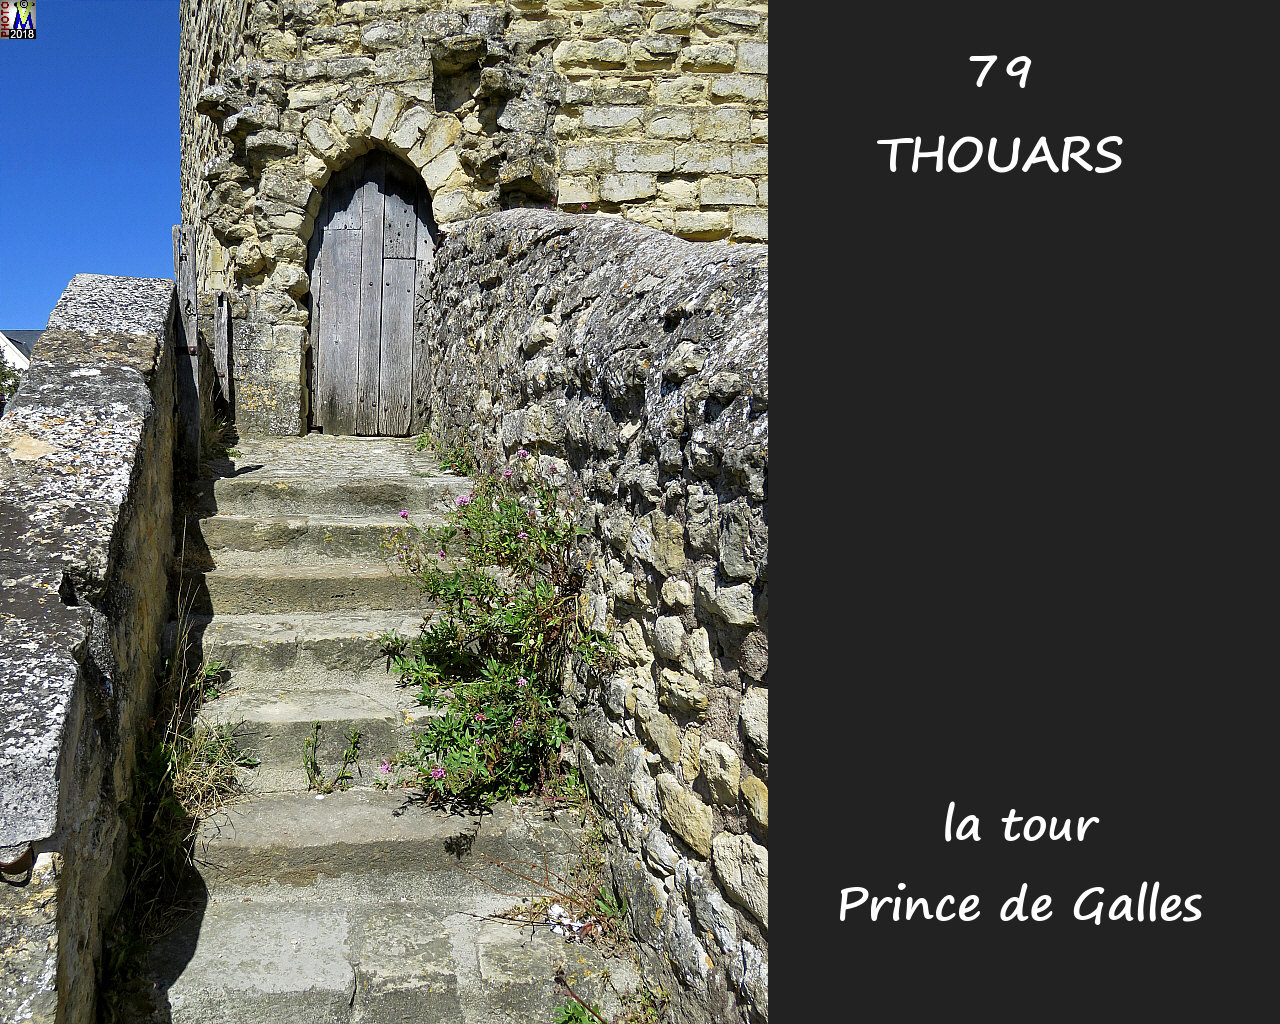 79THOUARS_TourPG_1008.jpg